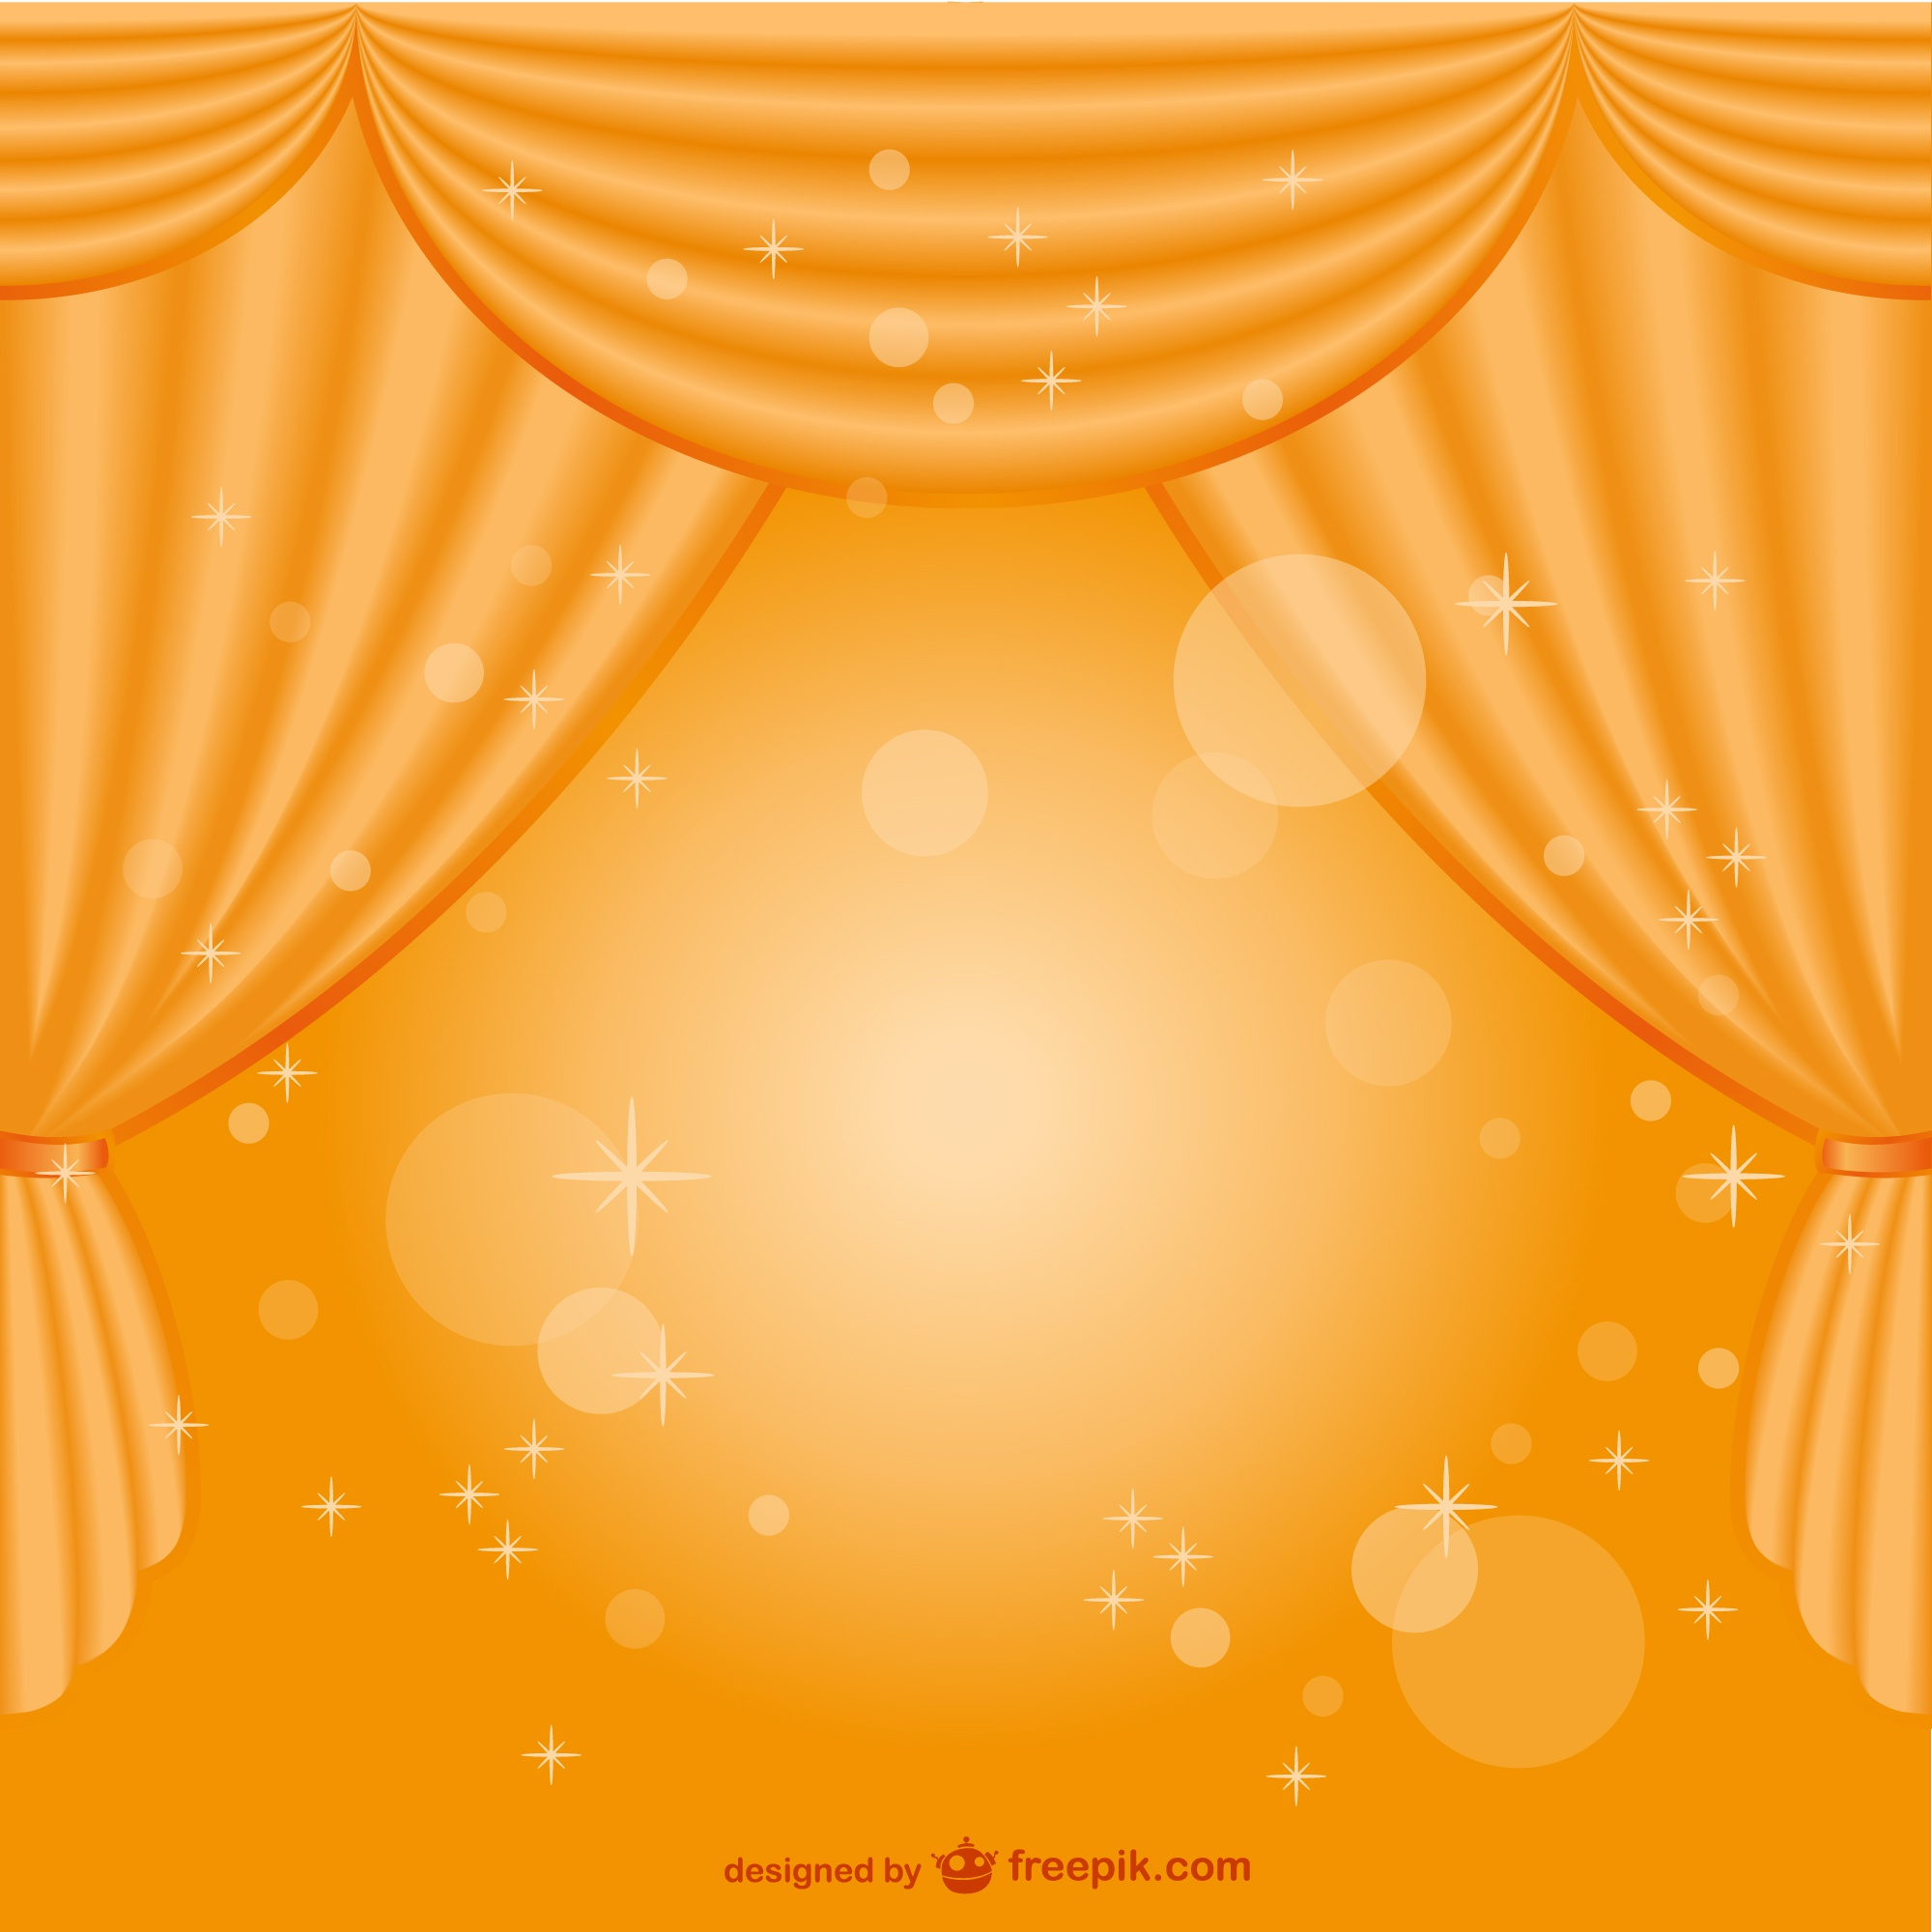 Yellow curtain background